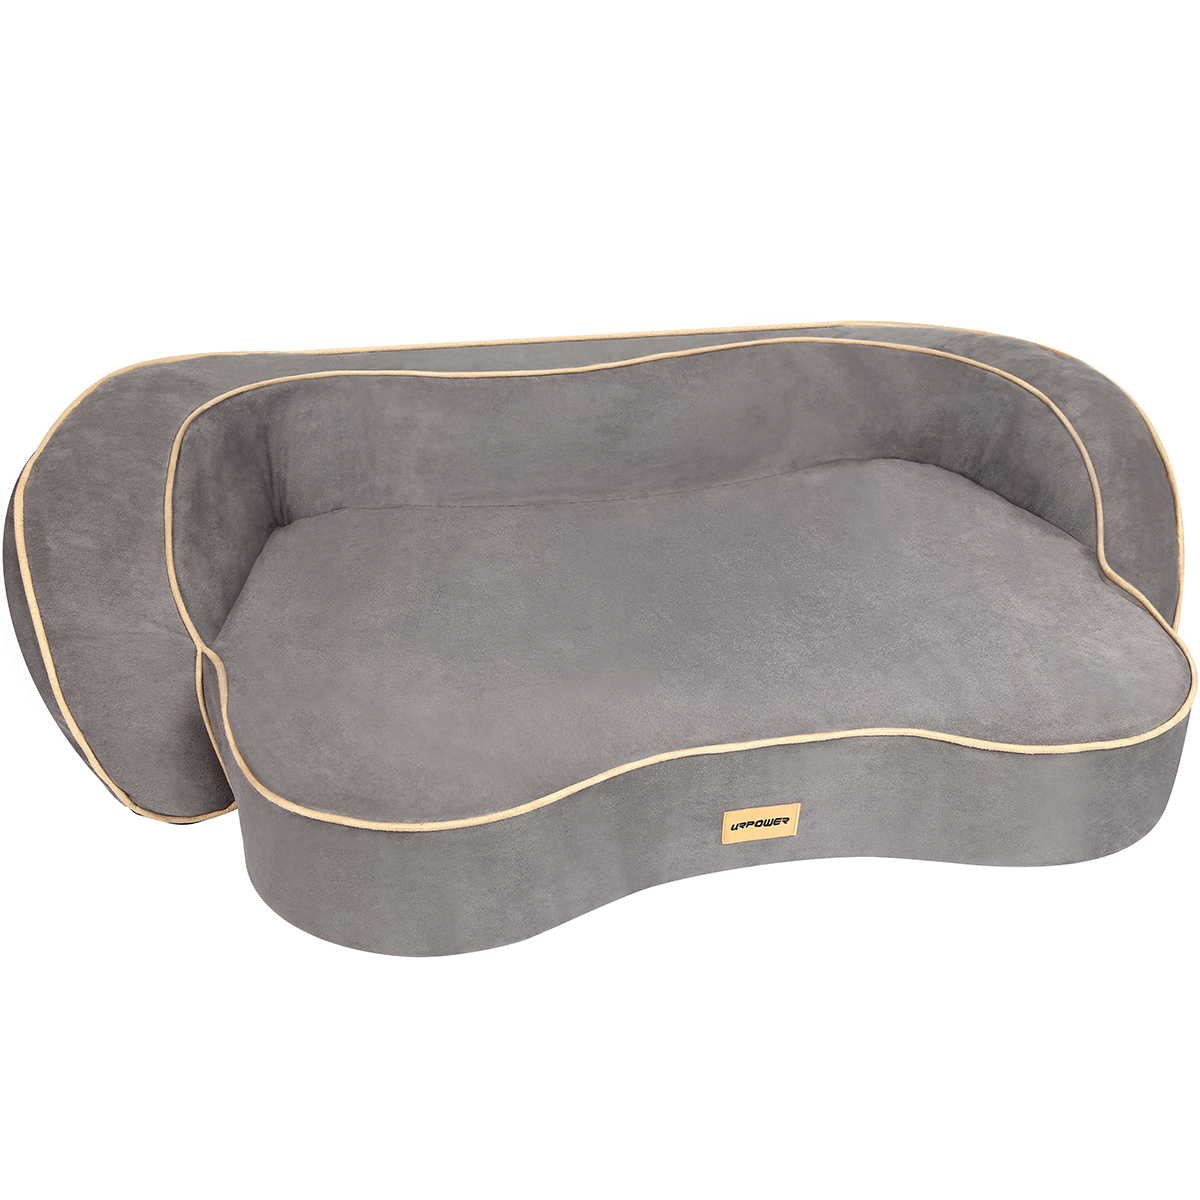 URPOWER Orthopedic Memory Foam Pet Bed with Washable Cover & Water-Resistant Inner Liner Padded Rim Dog Beds